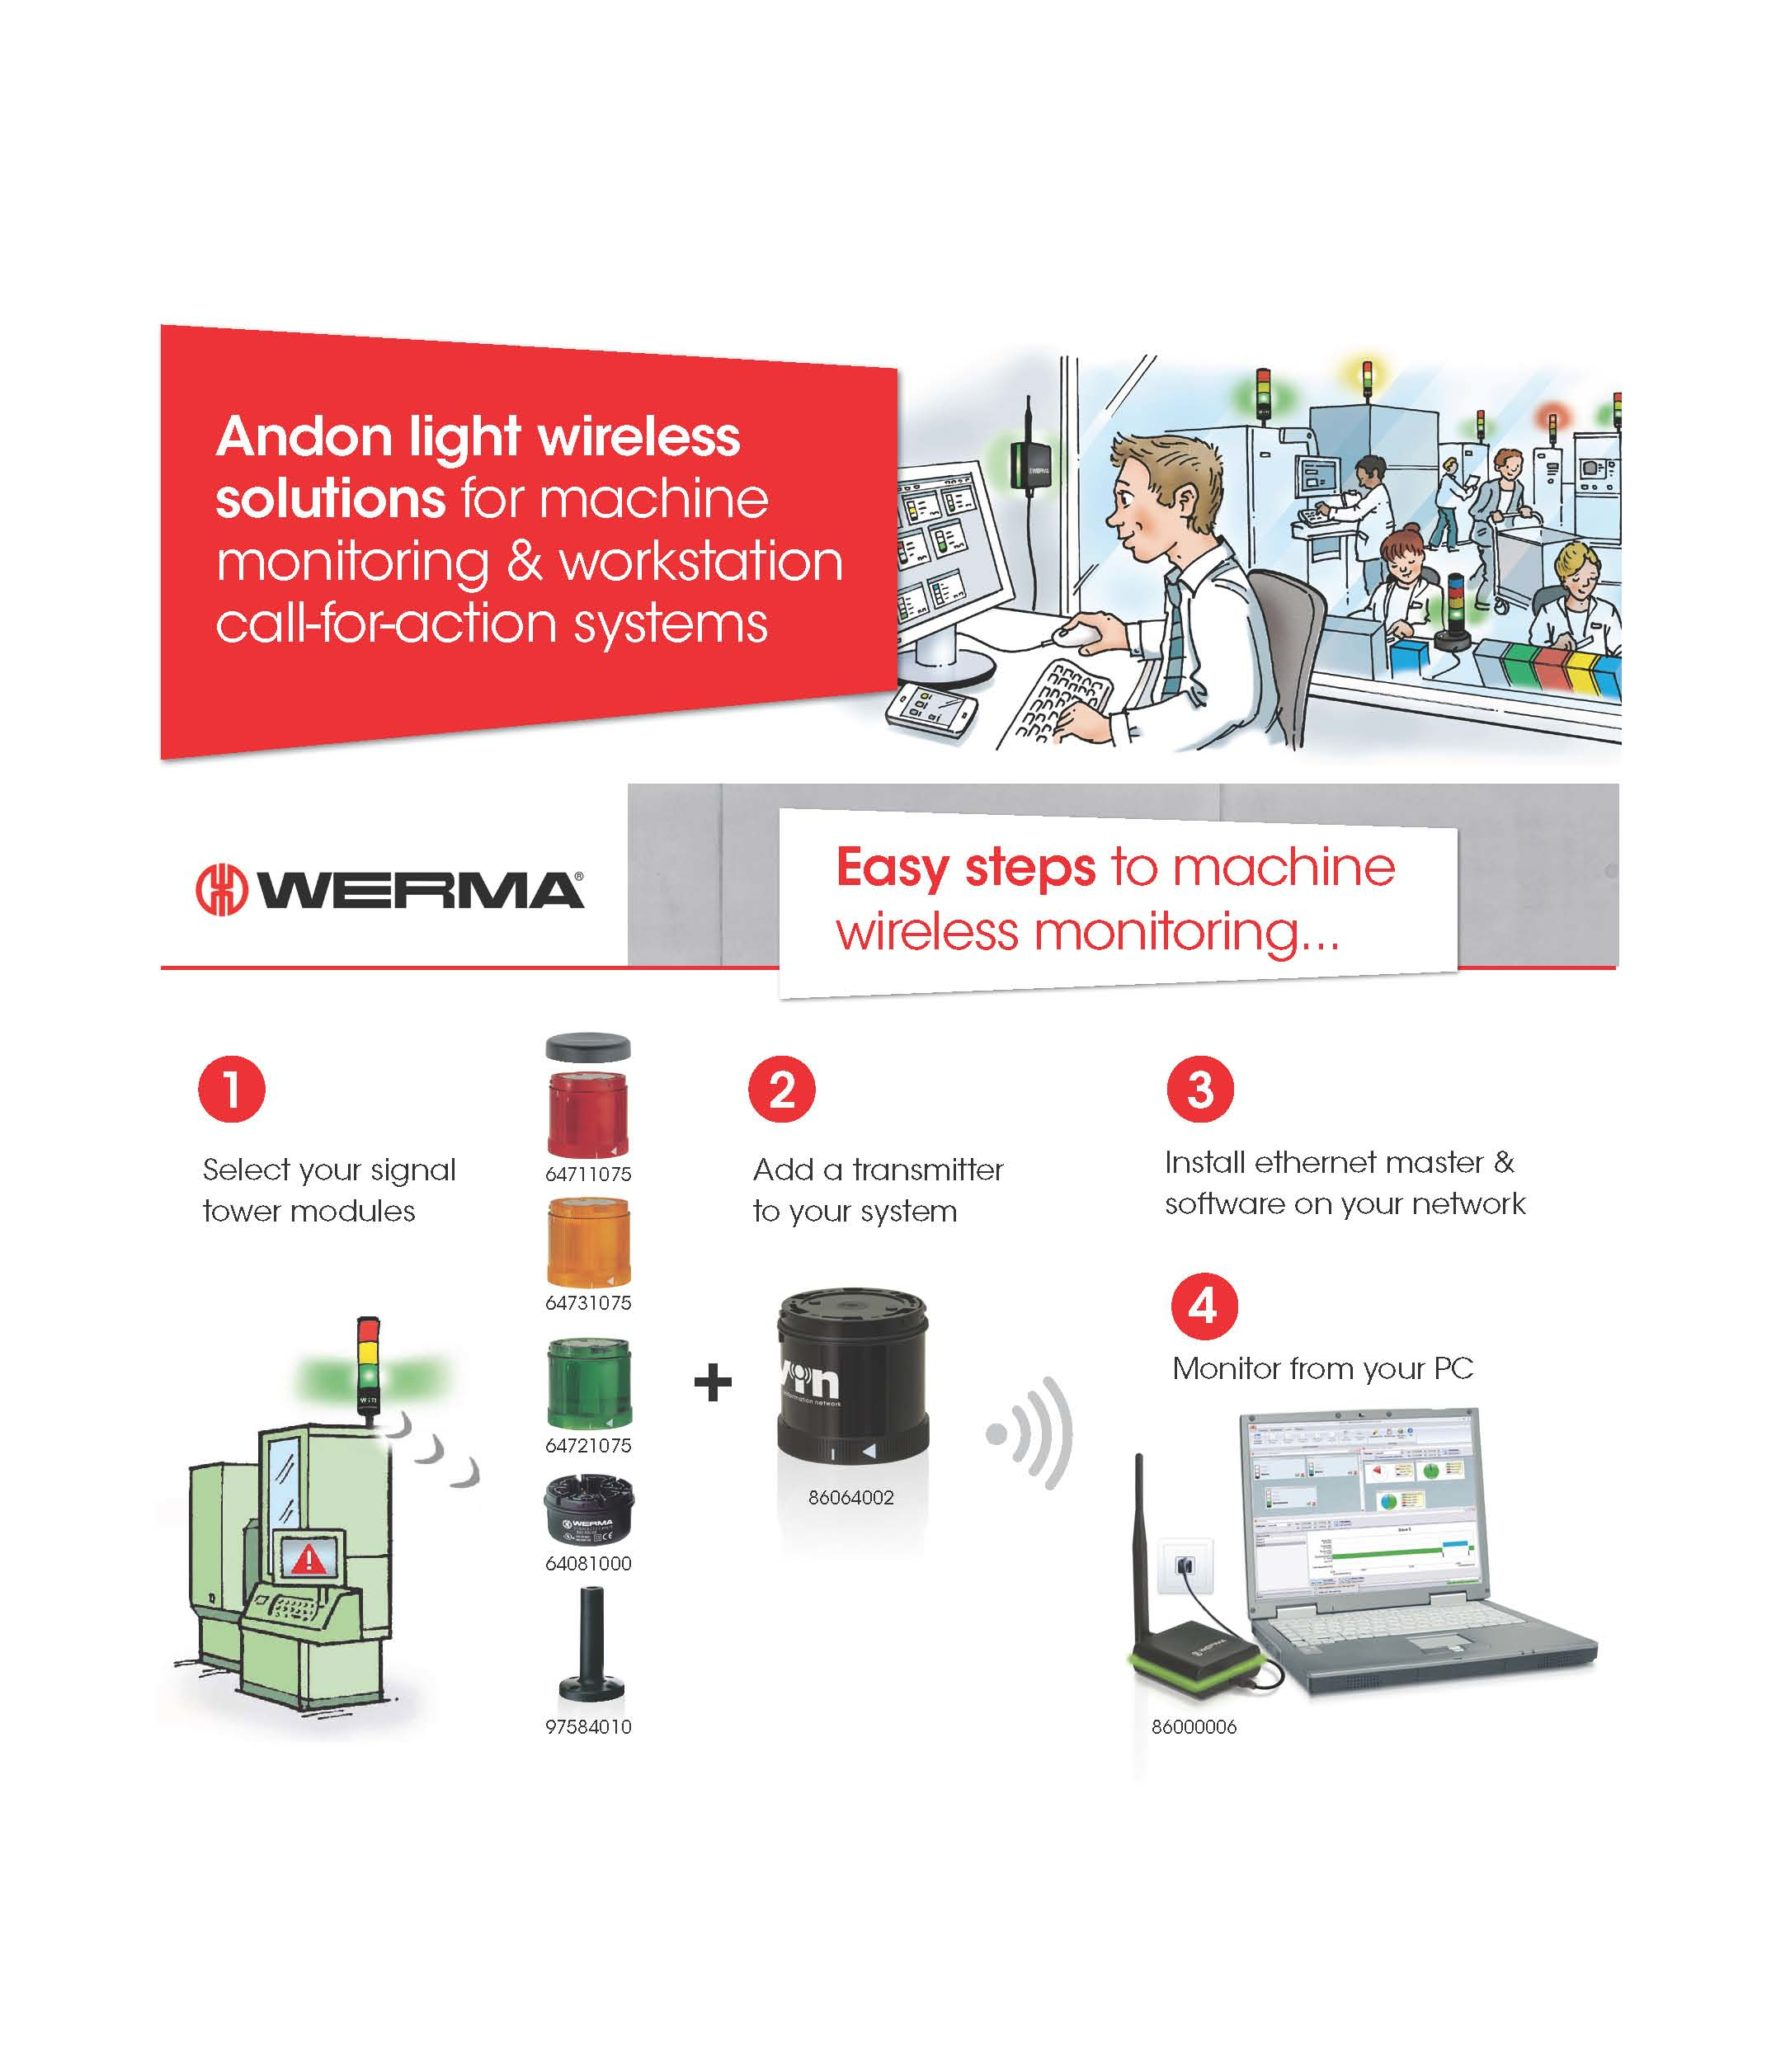 WERMA shows the simple steps to installing their machine wireless monitoring system SmartMONITOR